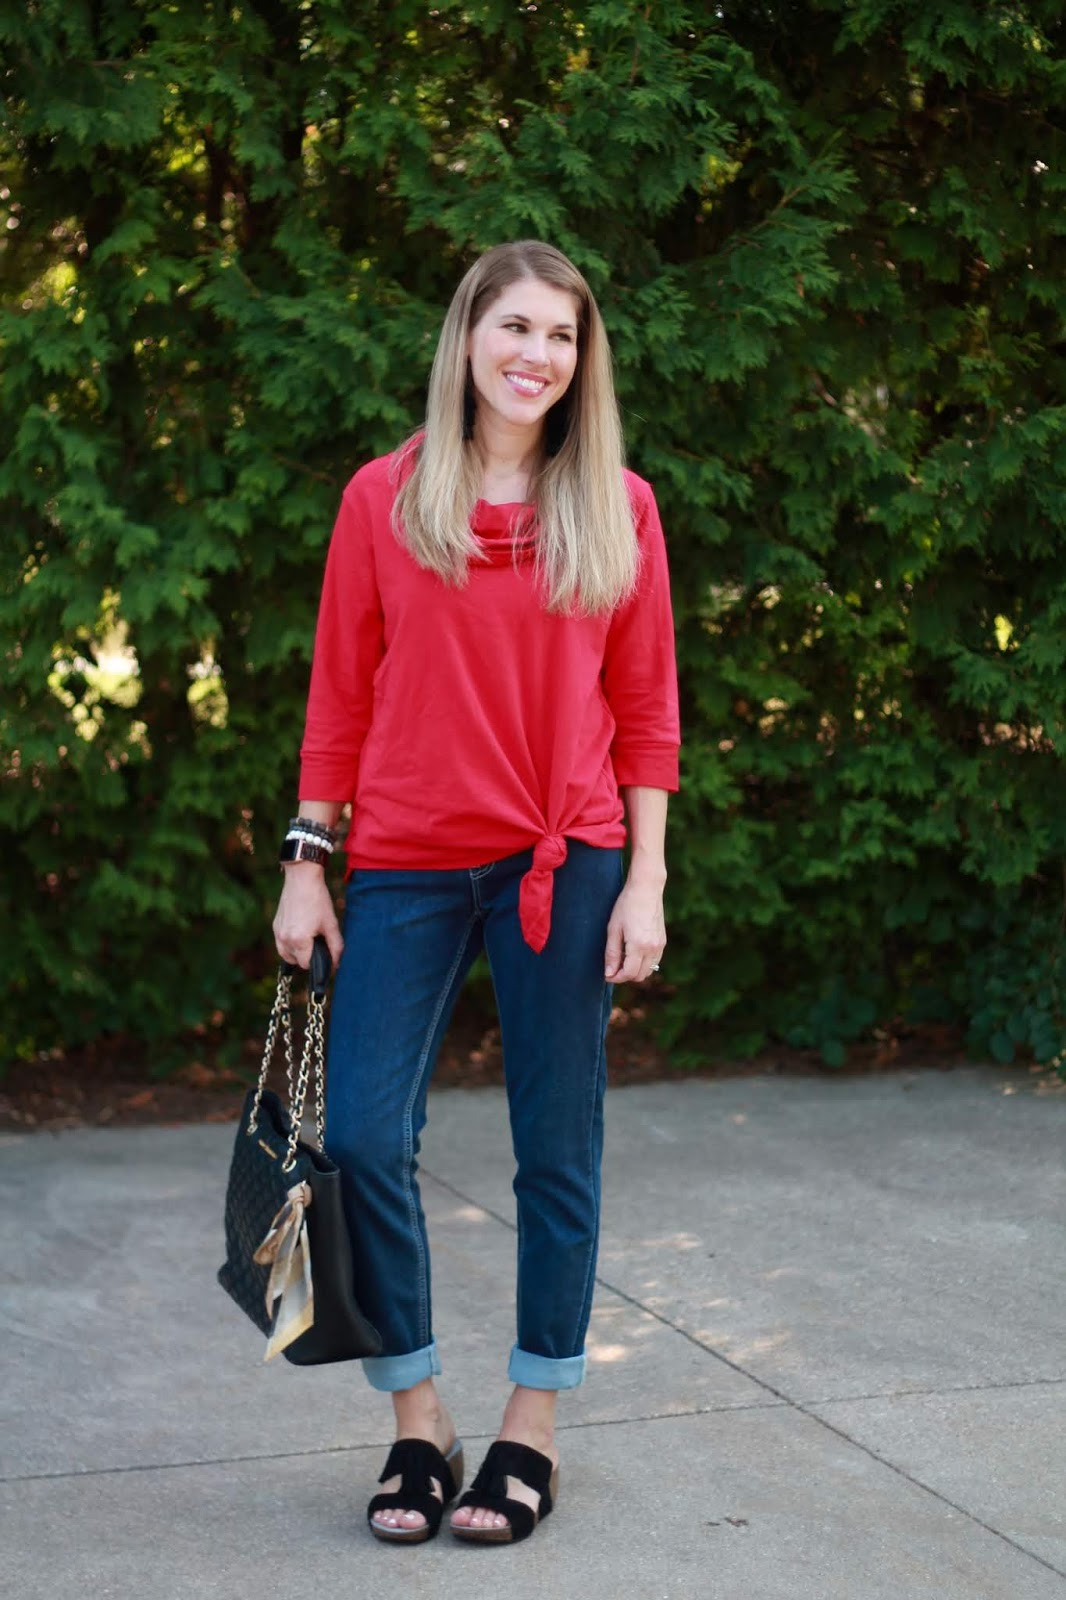 Ethyl red tunic, Ethyl french terry jeans, ABEO black wedges, quilted black leather tote